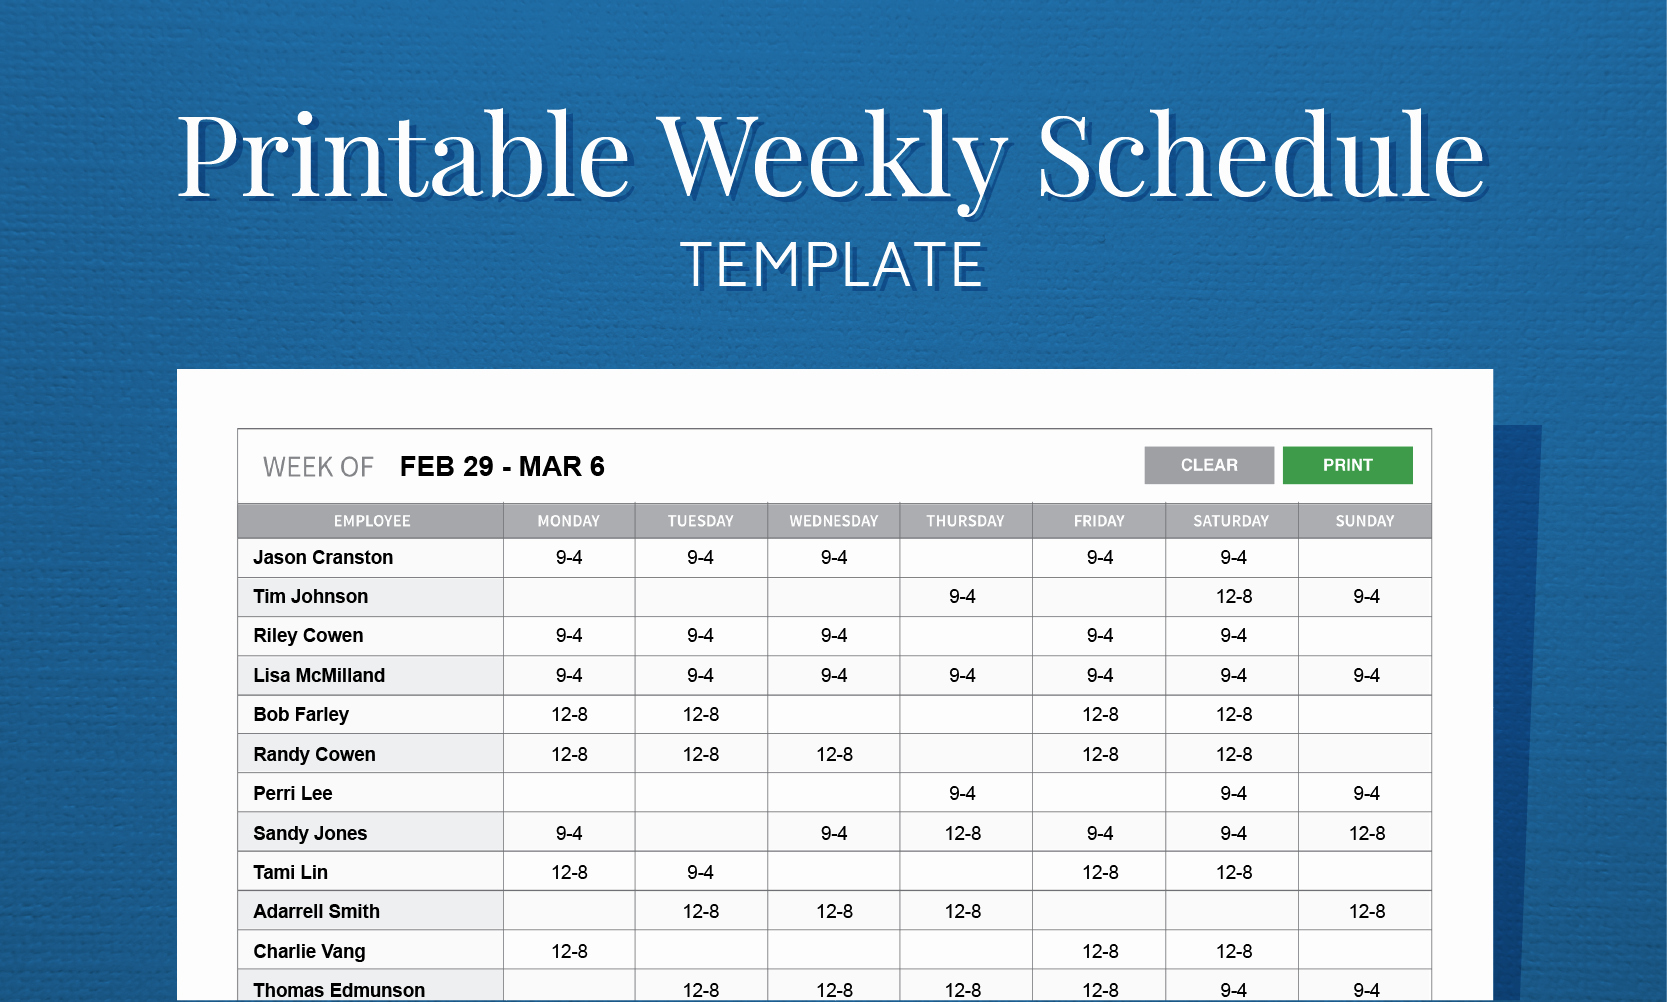 Restaurant Employee Schedule Template Awesome Free Printable Weekly Work Schedule Template for Employee